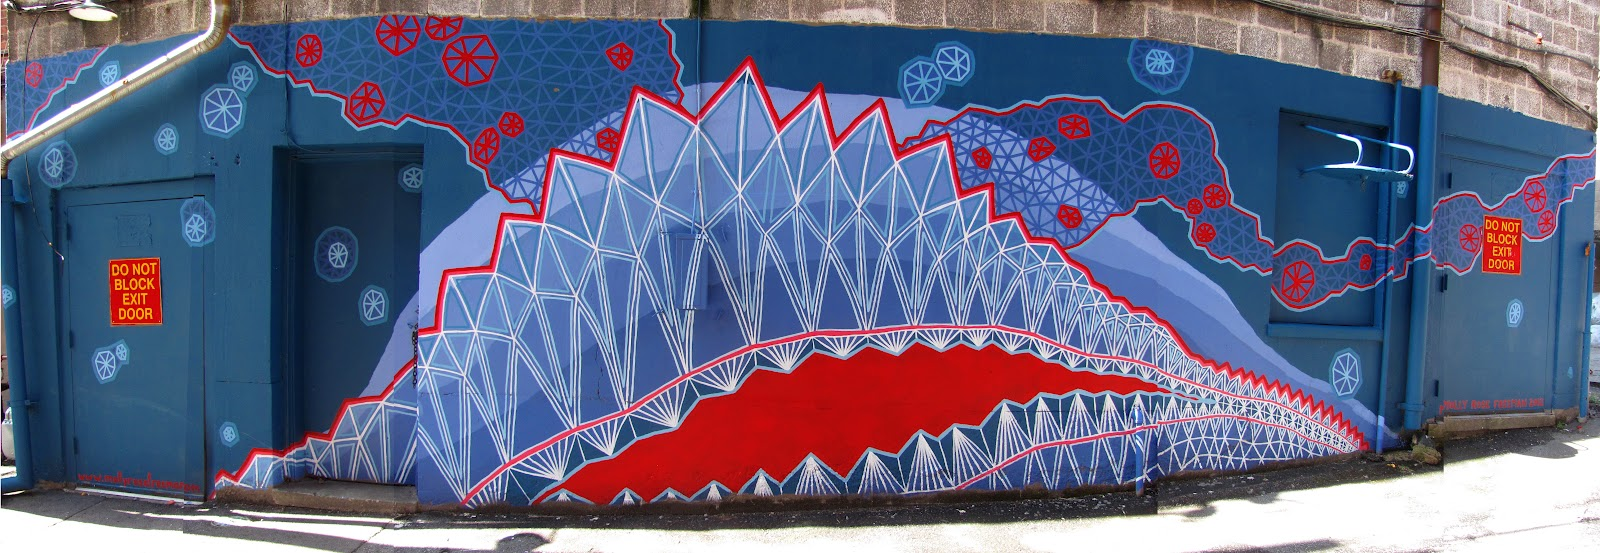 Molly rose freeman public art for Asheville mural project